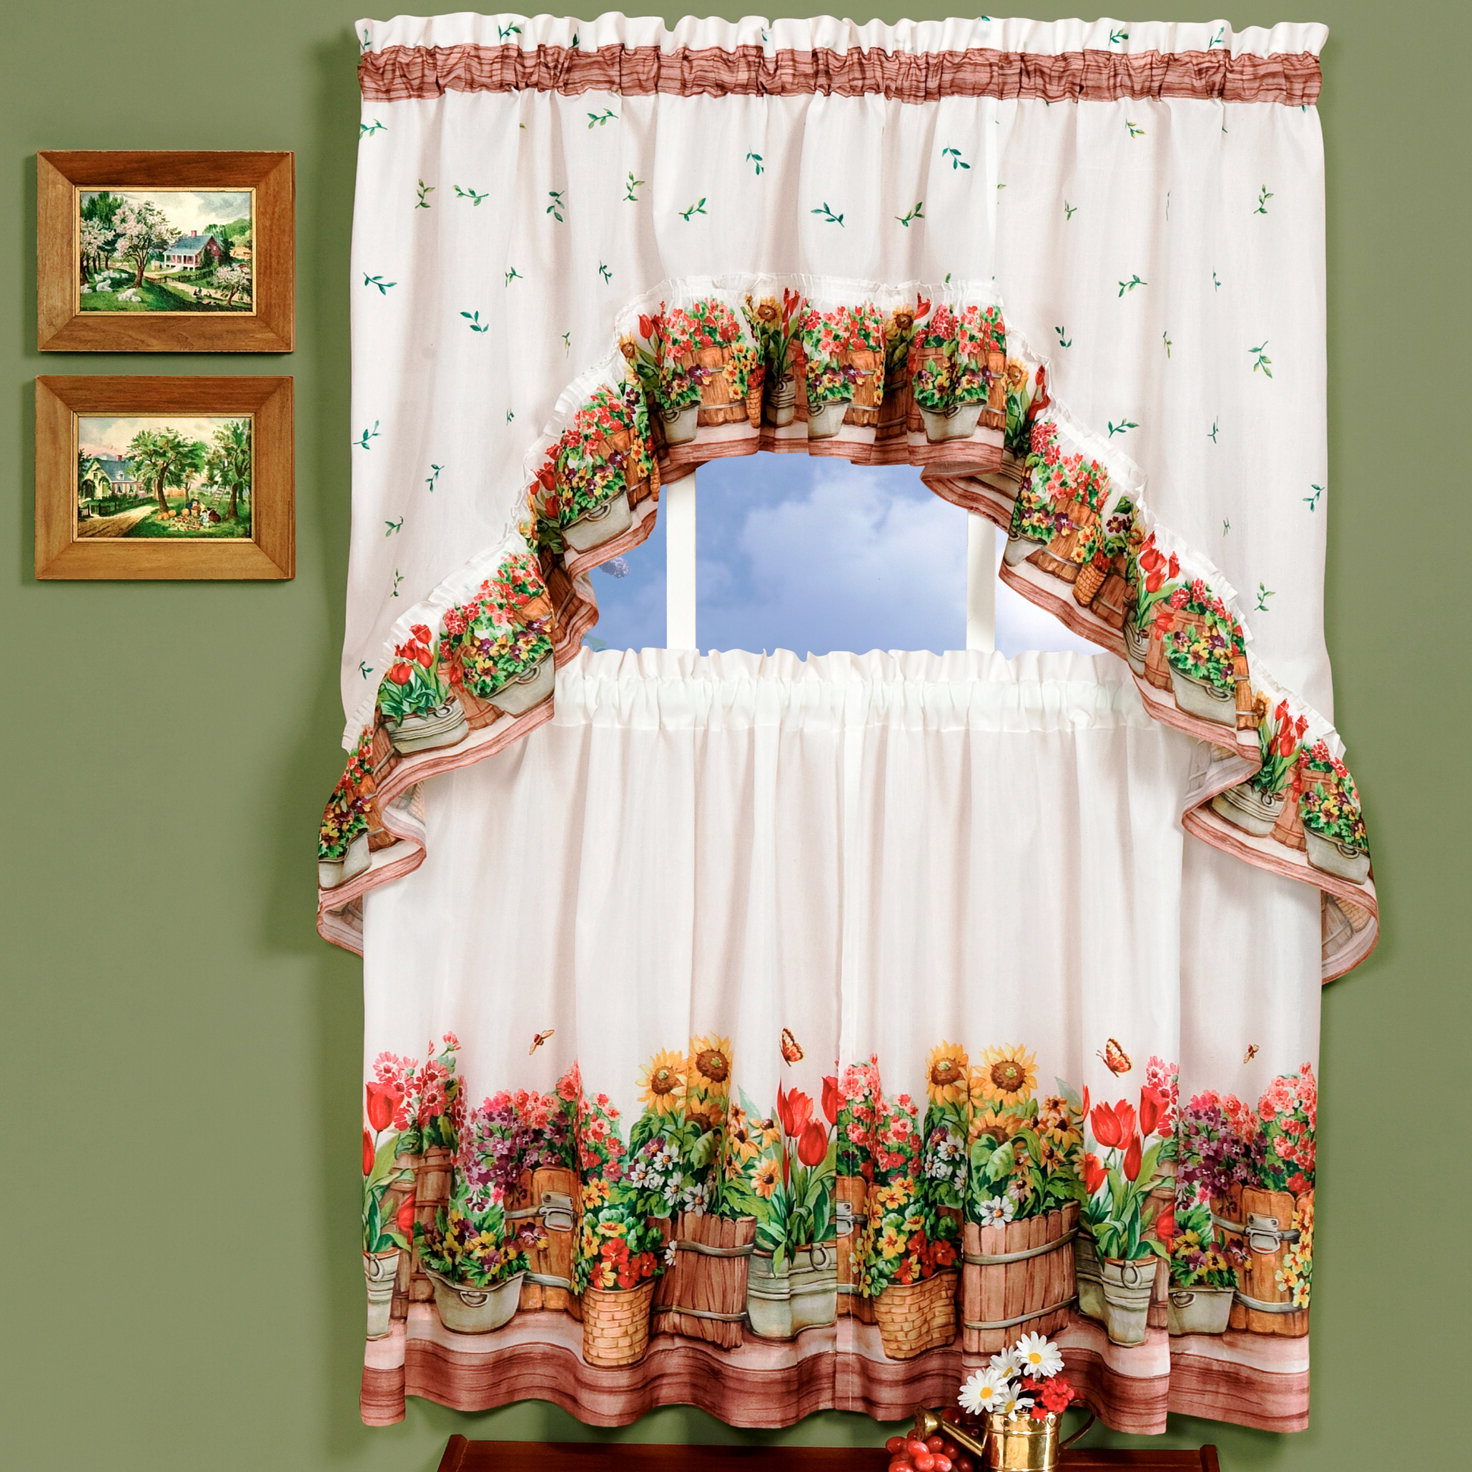 Country Garden Valance And Tier Set Pertaining To Widely Used Chardonnay Tier And Swag Kitchen Curtain Sets (View 19 of 20)